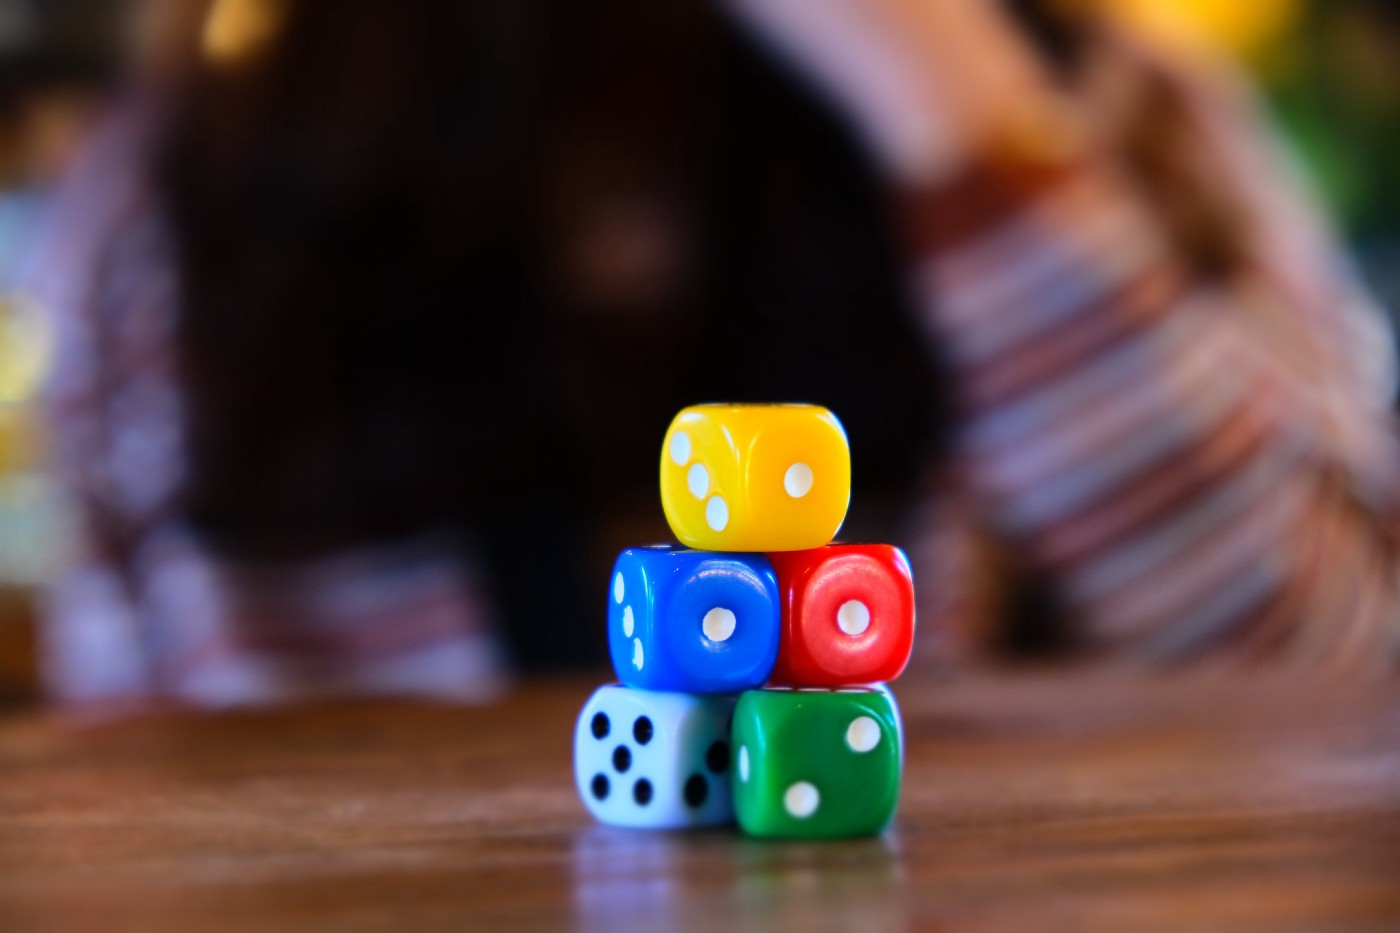 A stack of dice or a board game sitting on a table with a person behind them.